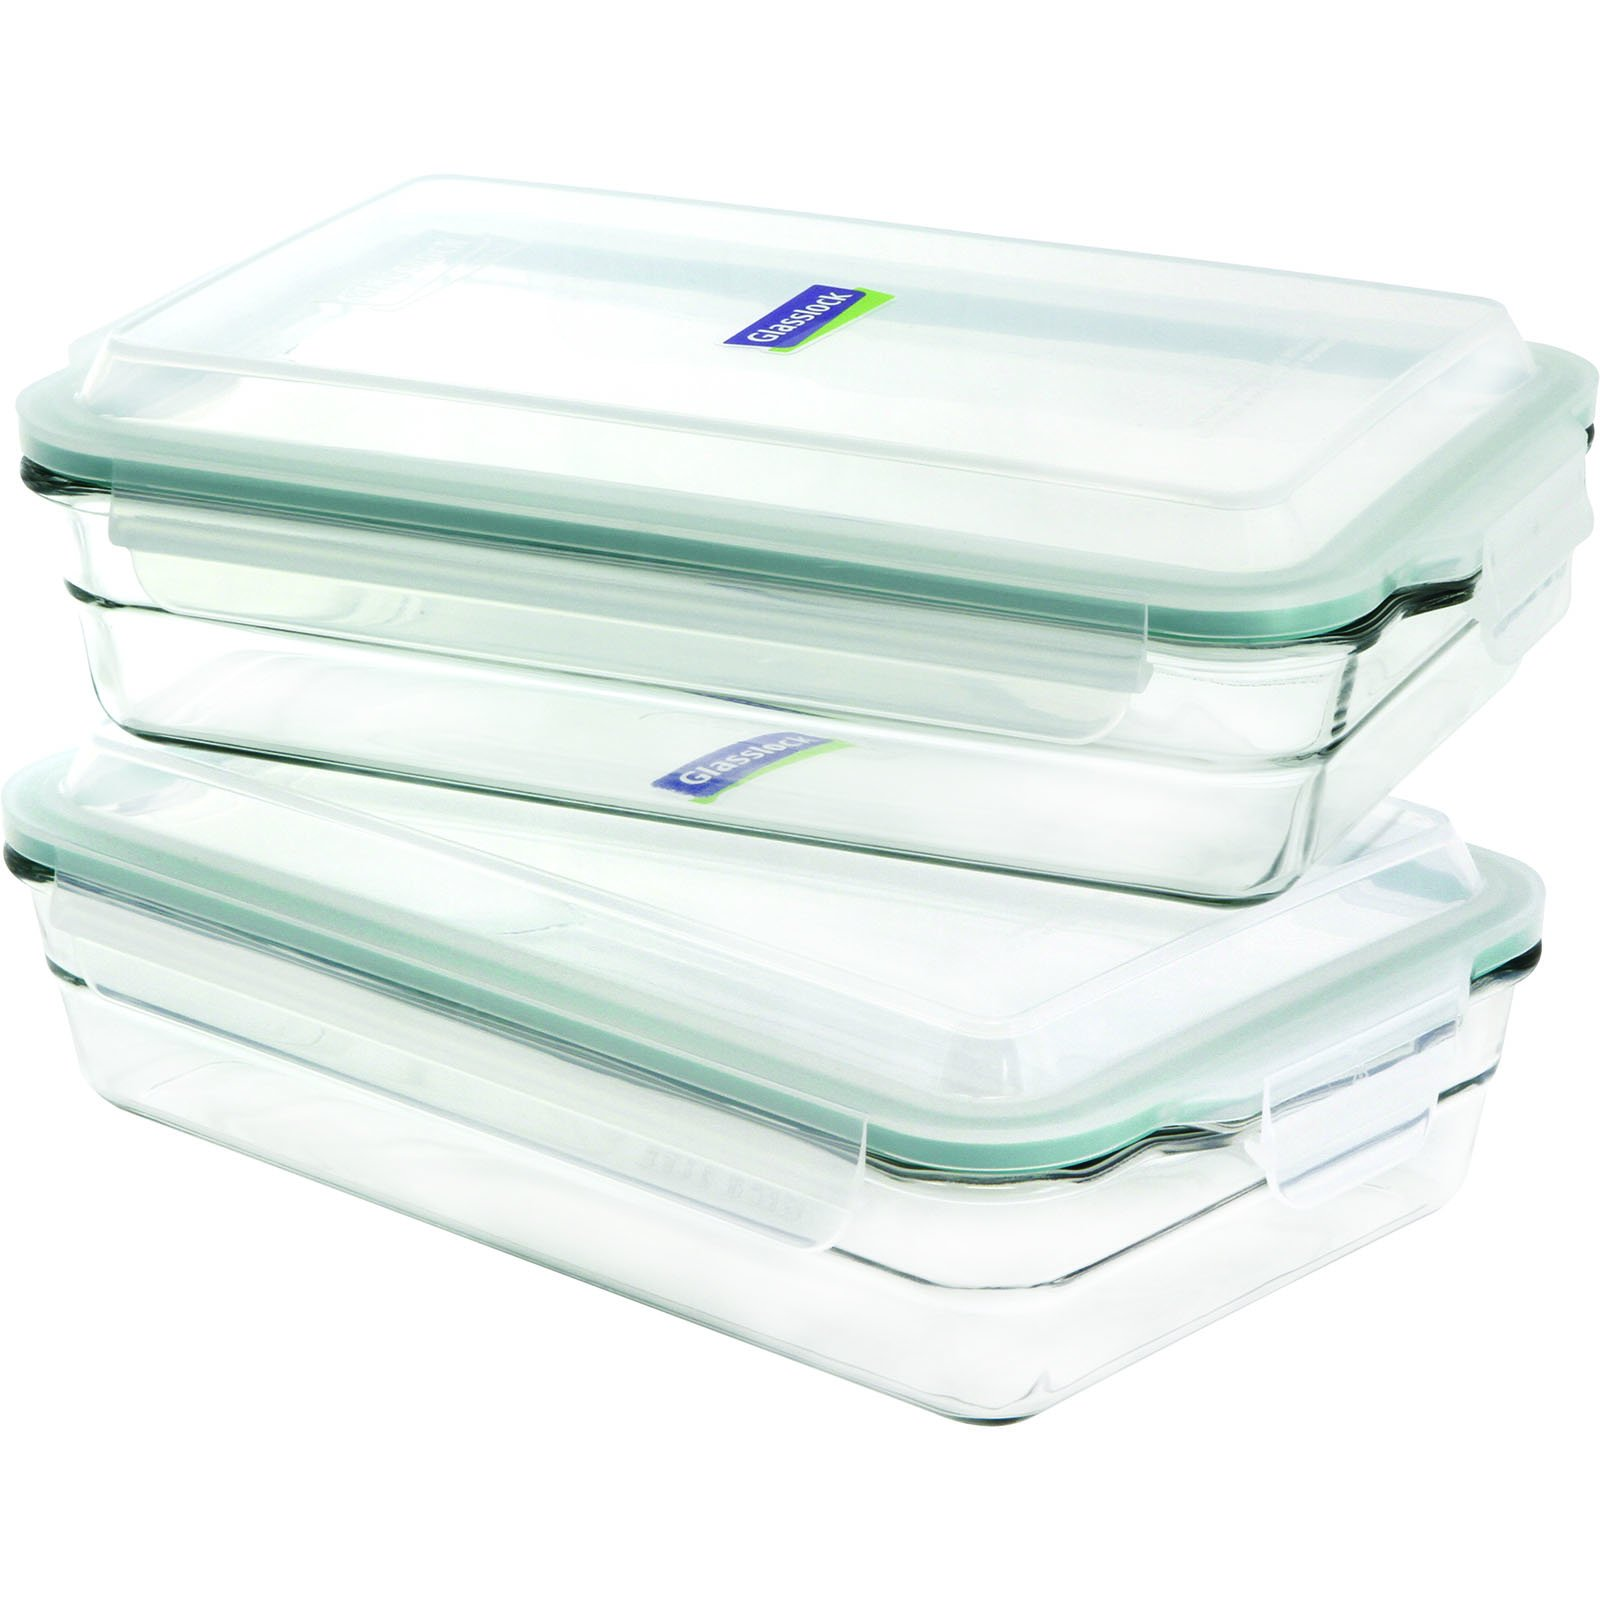 Glasslock 4-Piece Oven Safe Bakeware Rectangle Set, 6.5 x 10.5 inch